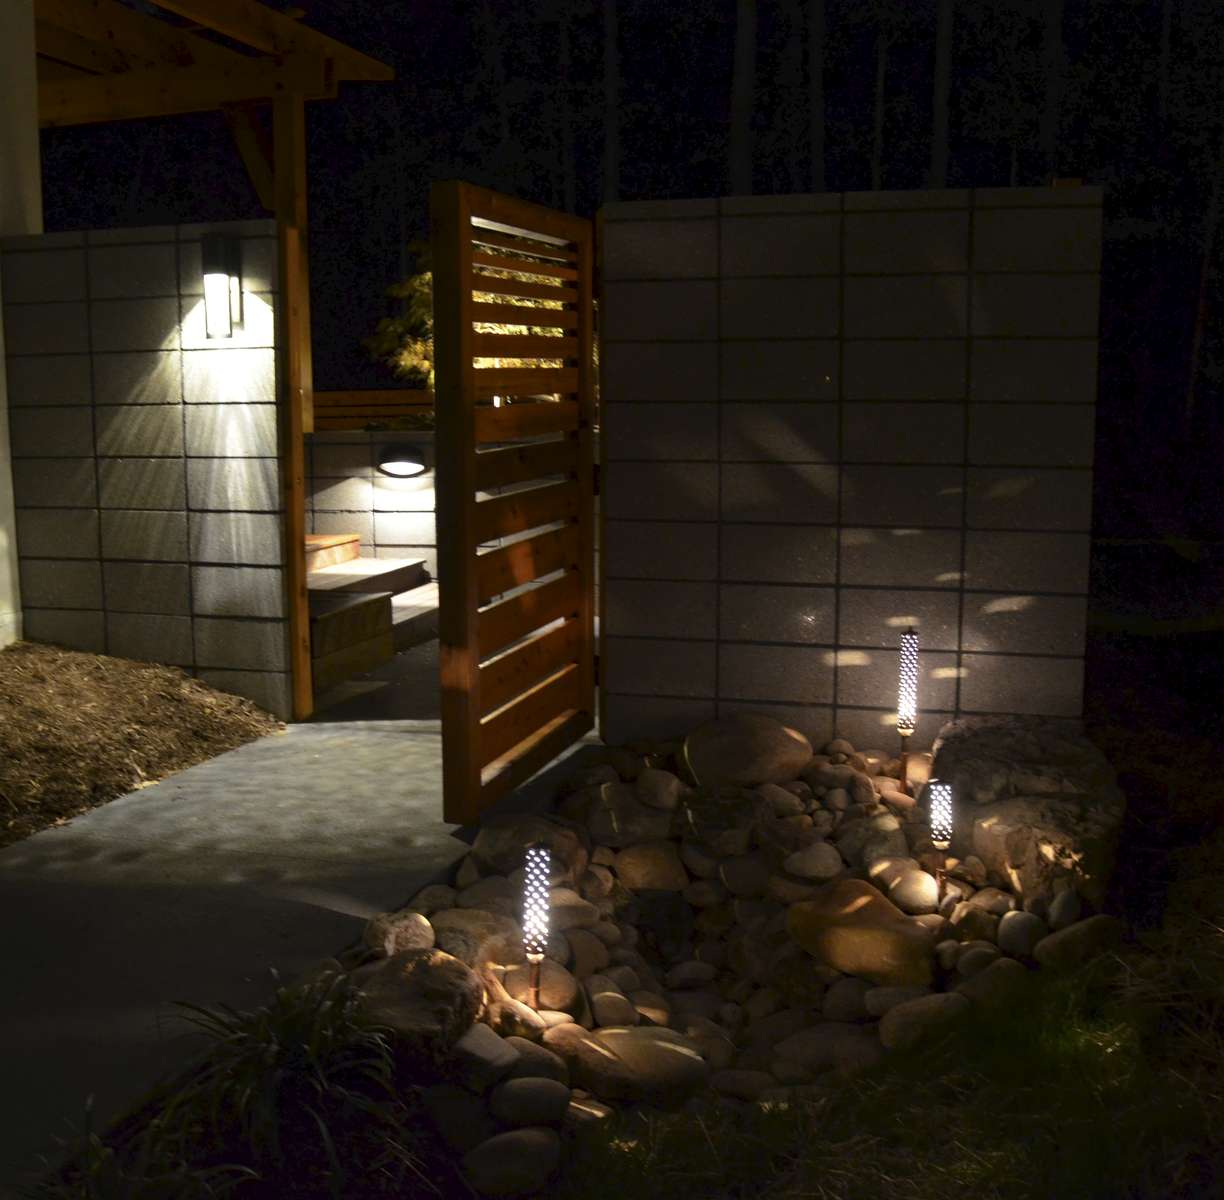 Entry into the backyard, as seen here in the evening, is accentuated by cedar privacy gates.